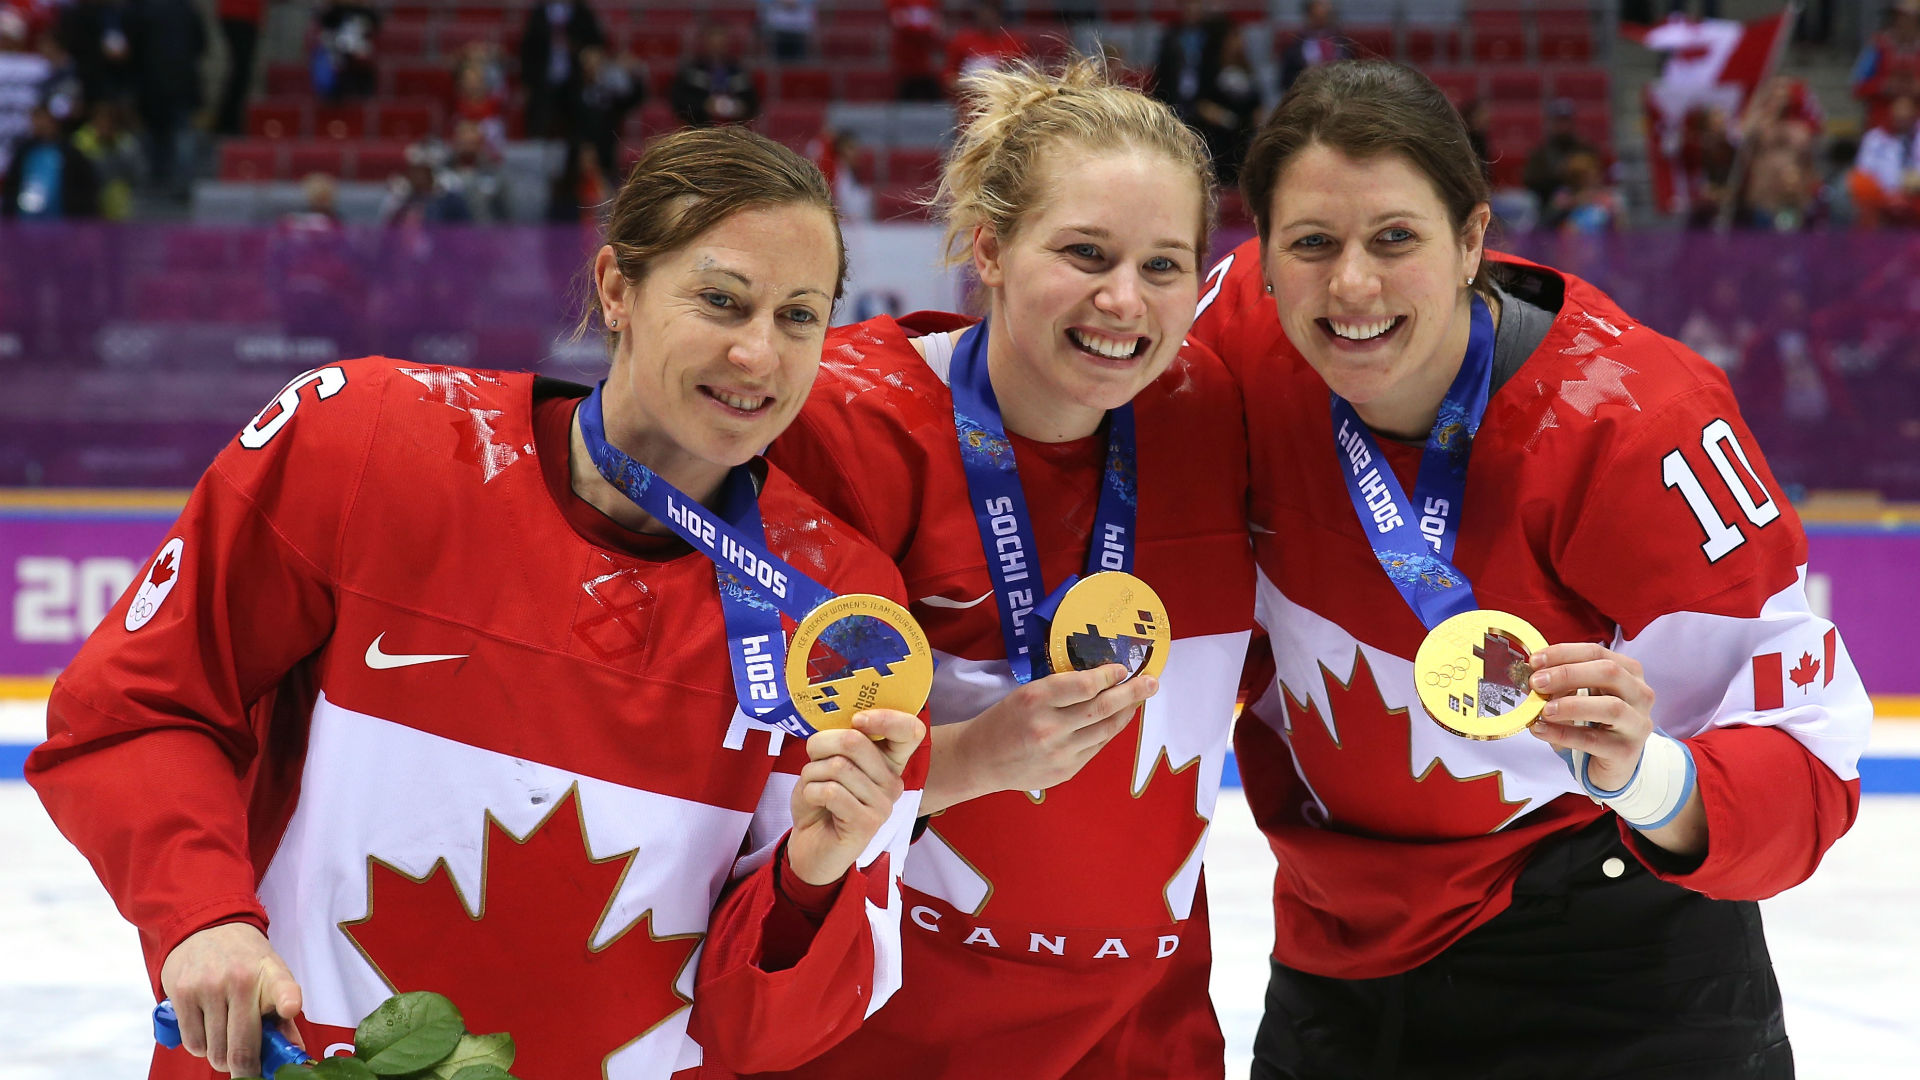 Discussion on this topic: Elizabeth McLaughlin, jayna-hefford/